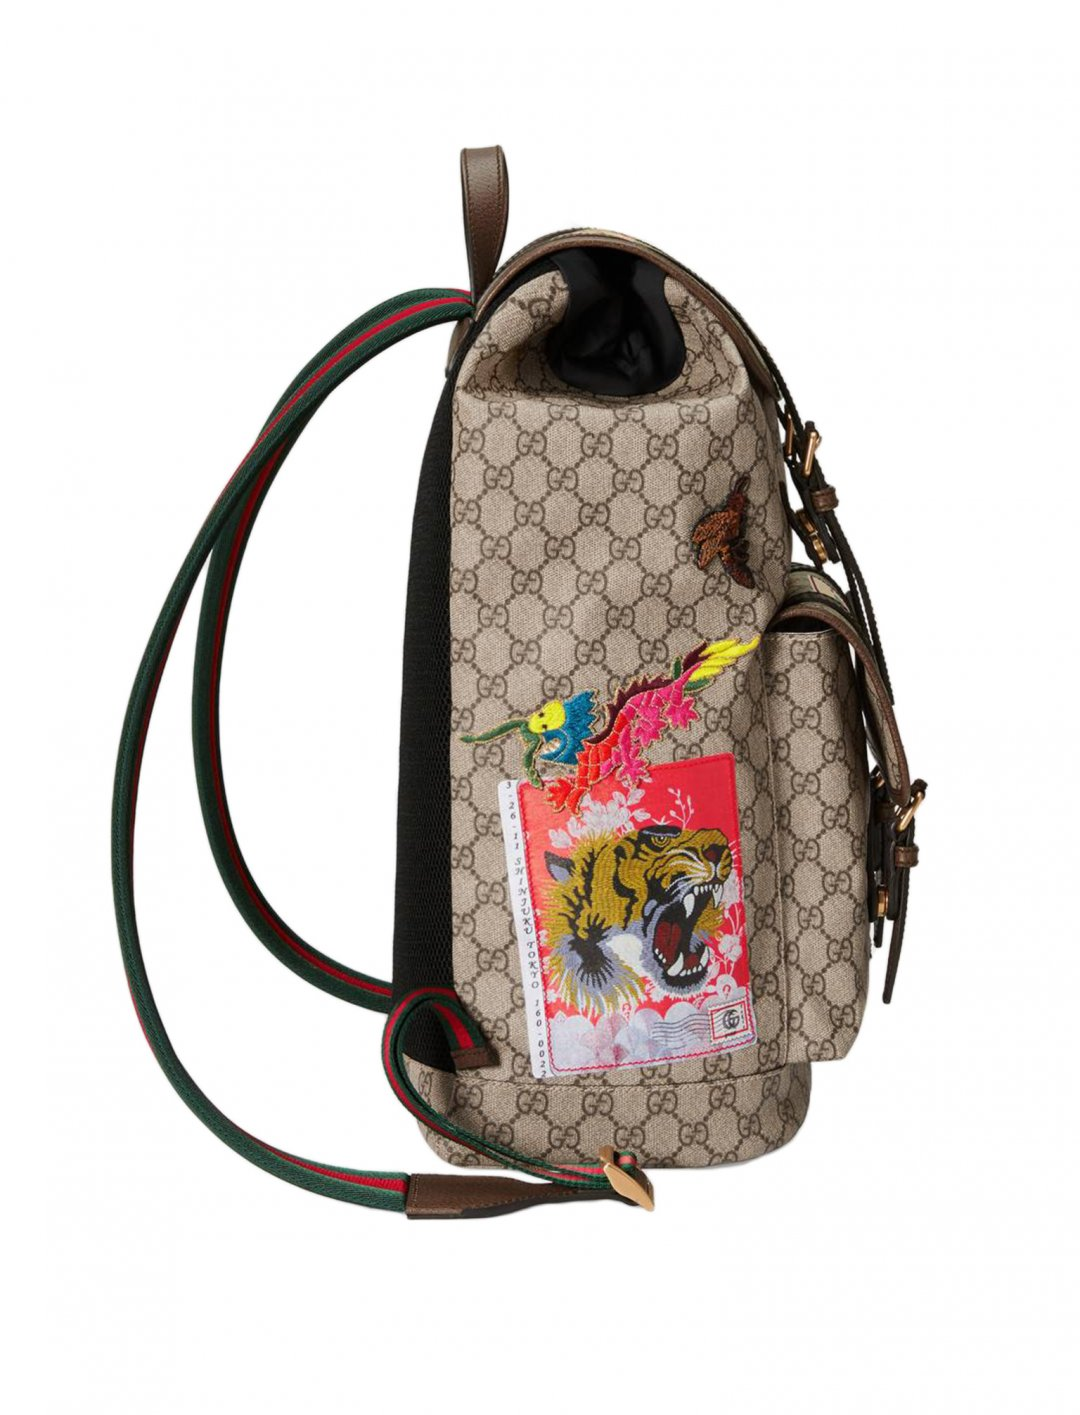 b91102f7dbc91c Dappy Backpack, Gucci, With Appliques from Comfortable Music Video